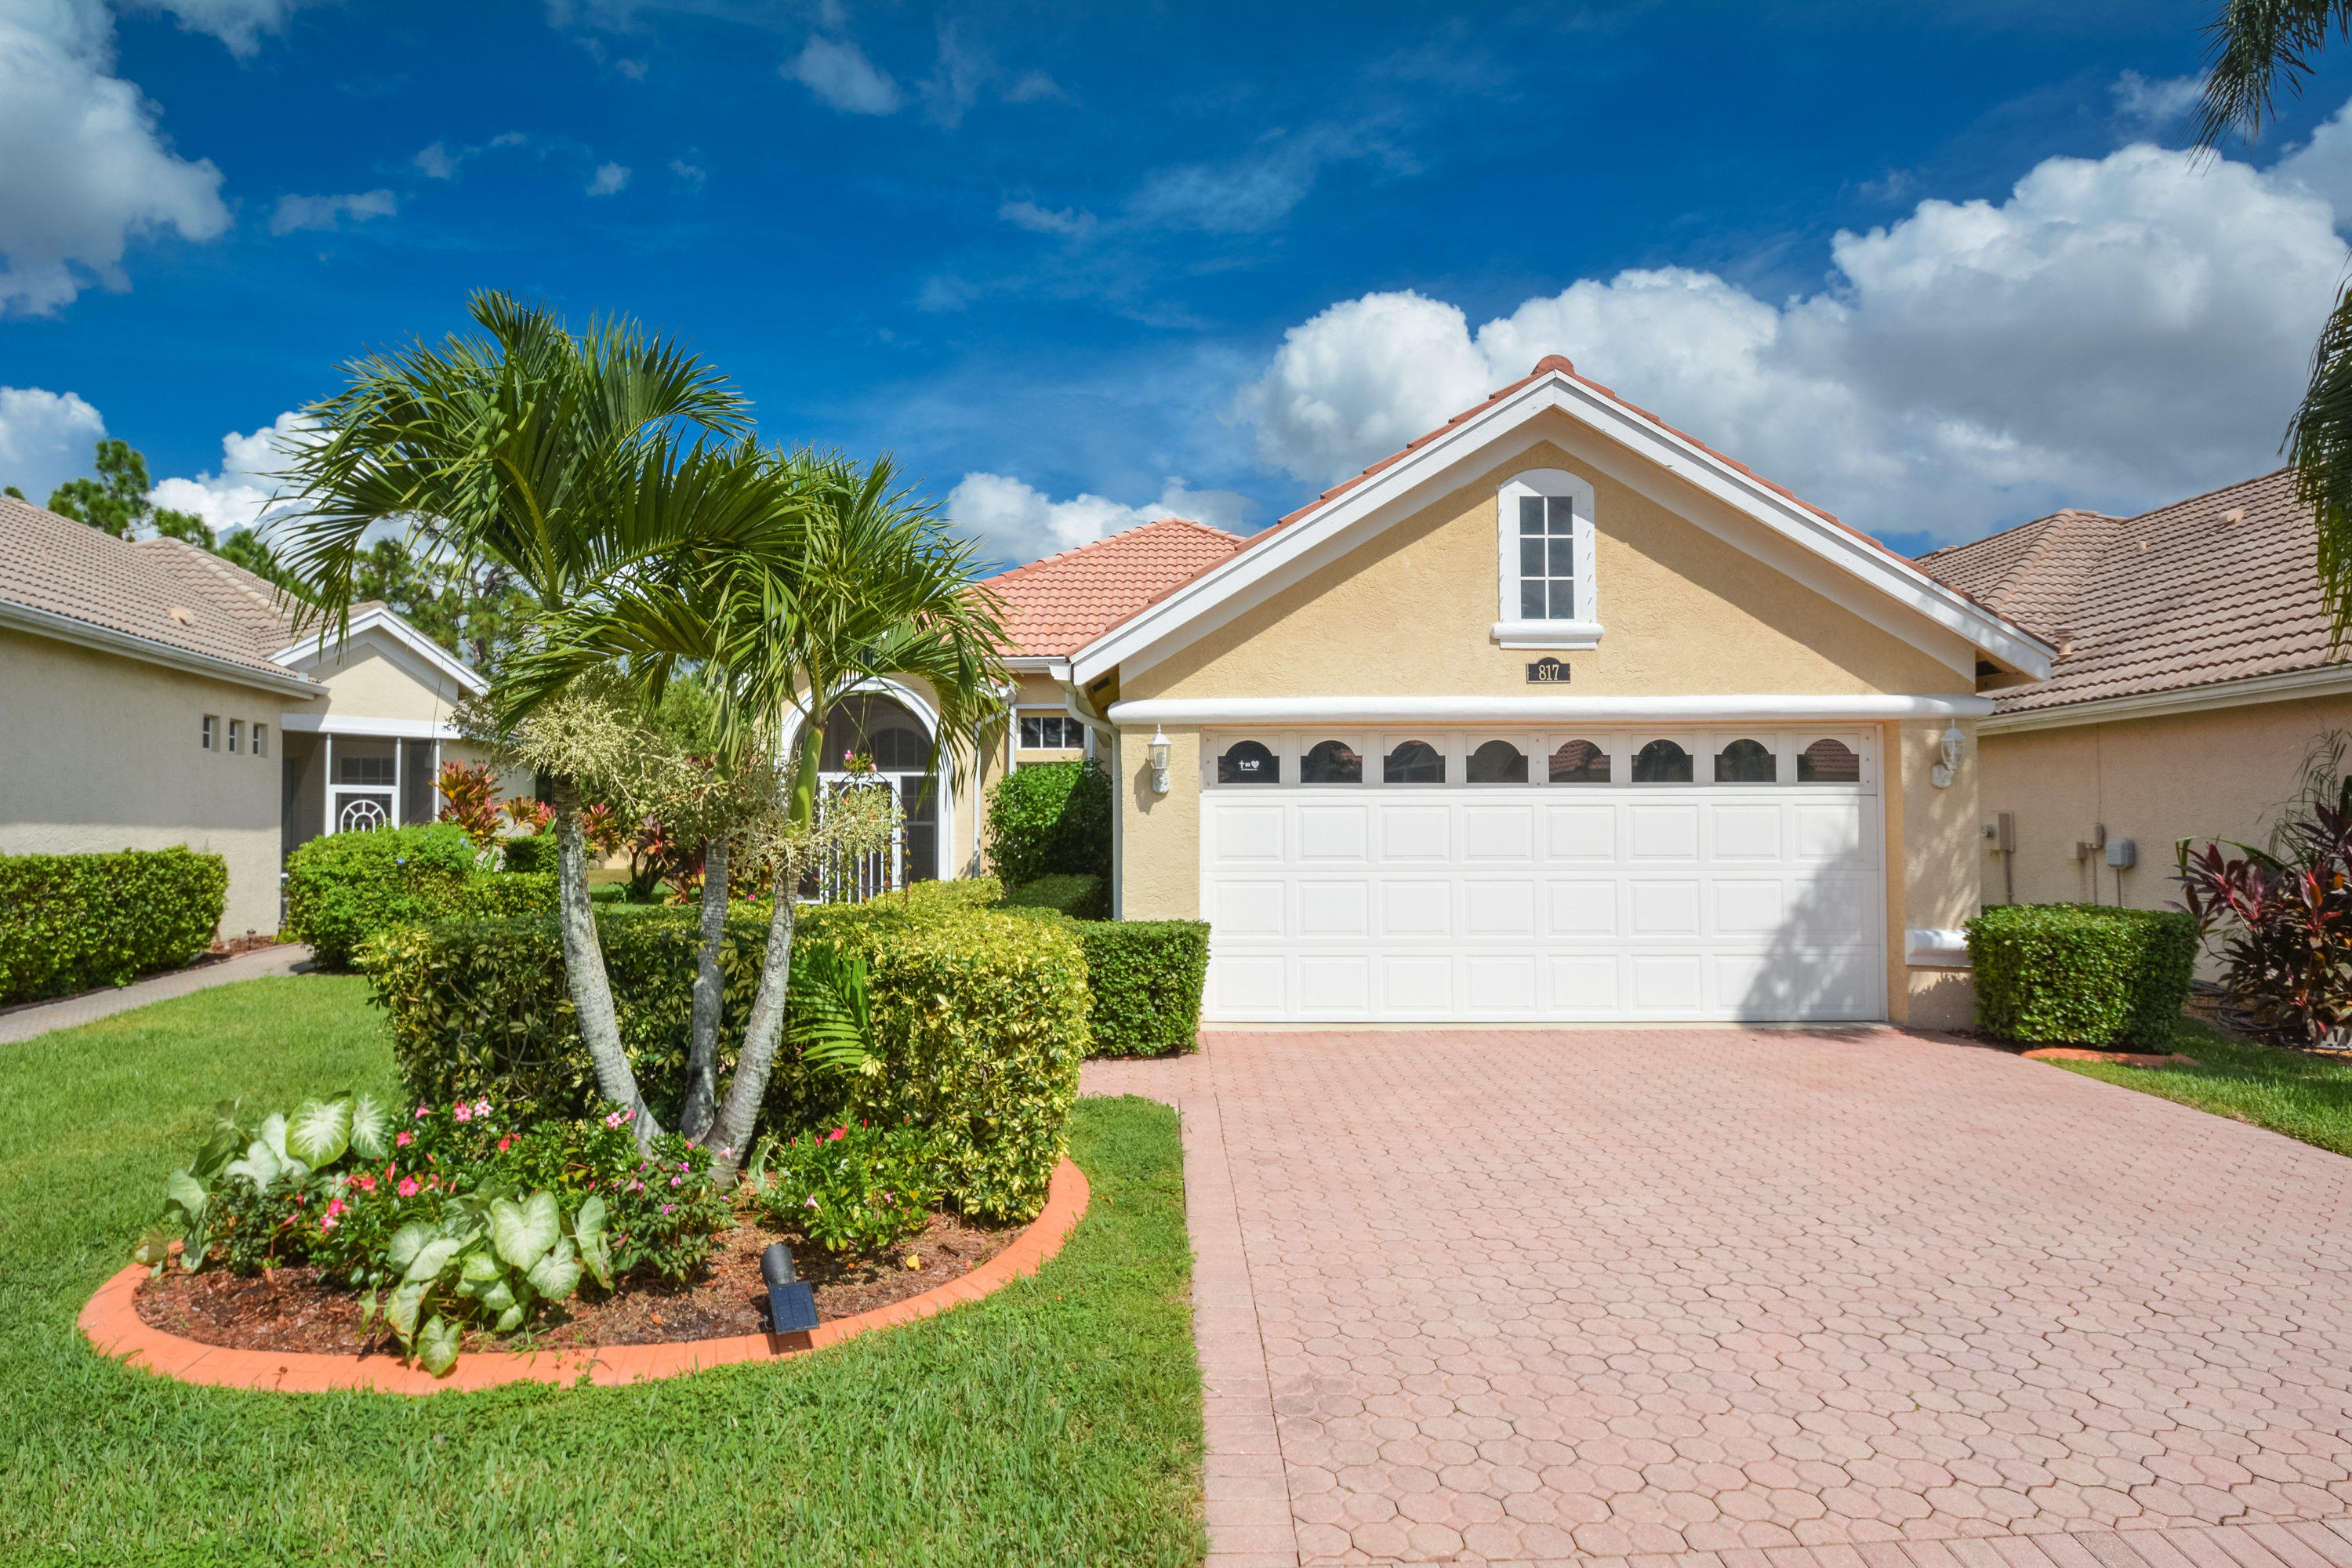 Immaculate 2/2/2 Home with Den in the sought after community of Lake Charles ready for new owners. This Gated Community is located in Saint Lucie West close to i-95, shopping, restaurants, financial institutions, Mets spring training complex, PGA Golf Courses and much more! This Ashley Model home has many GREAT features such as: Complete wall to wall tile, High Ceilings, Large Kitchen, Den, New Fans, New Lighting, New Screens, New Water Heater, Fresh Interior Paint, New Accordion Shutters, Beautiful Butterfly Garden and much much more! Home show like a model ! HURRY this home will not last long!!! Call and schedule your private tour today!